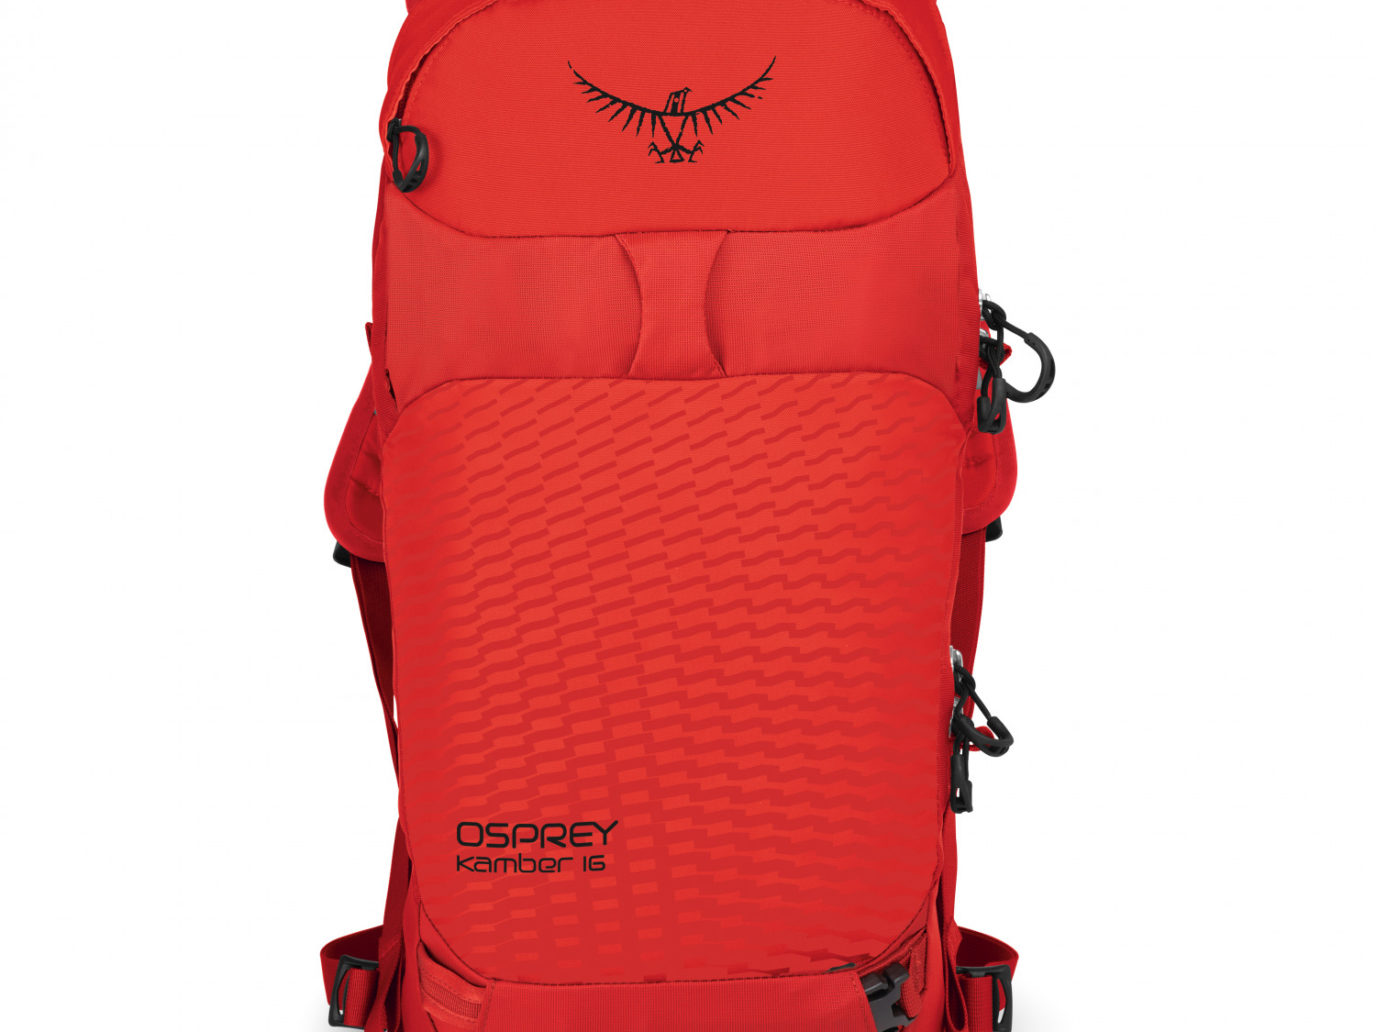 Osprey Kamber pack reviewed by Mountain Life Media